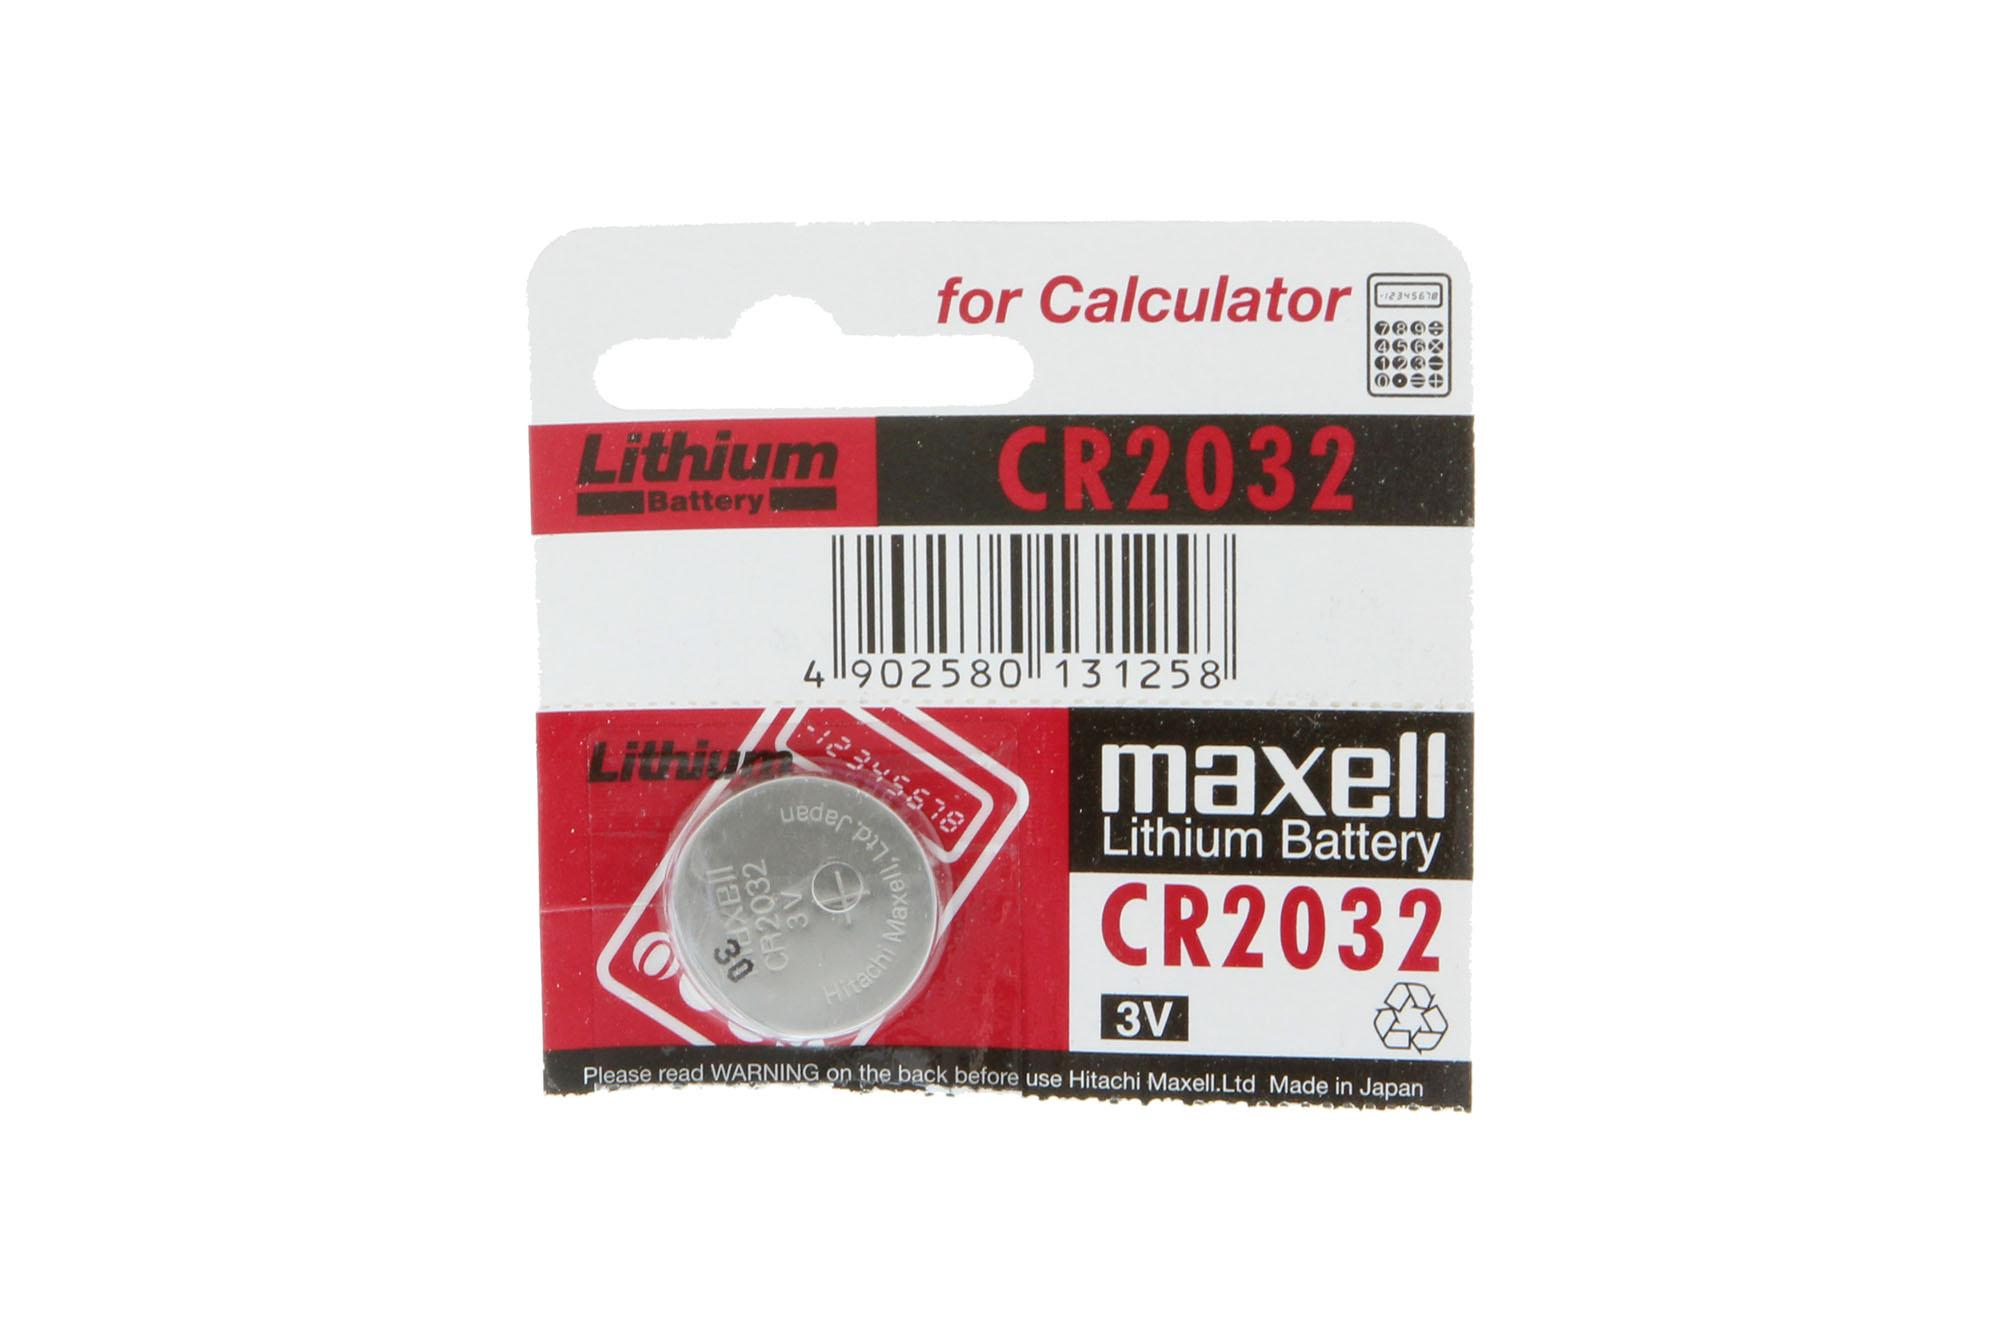 Maxell CR2032 Lithium Coin Battery - Single